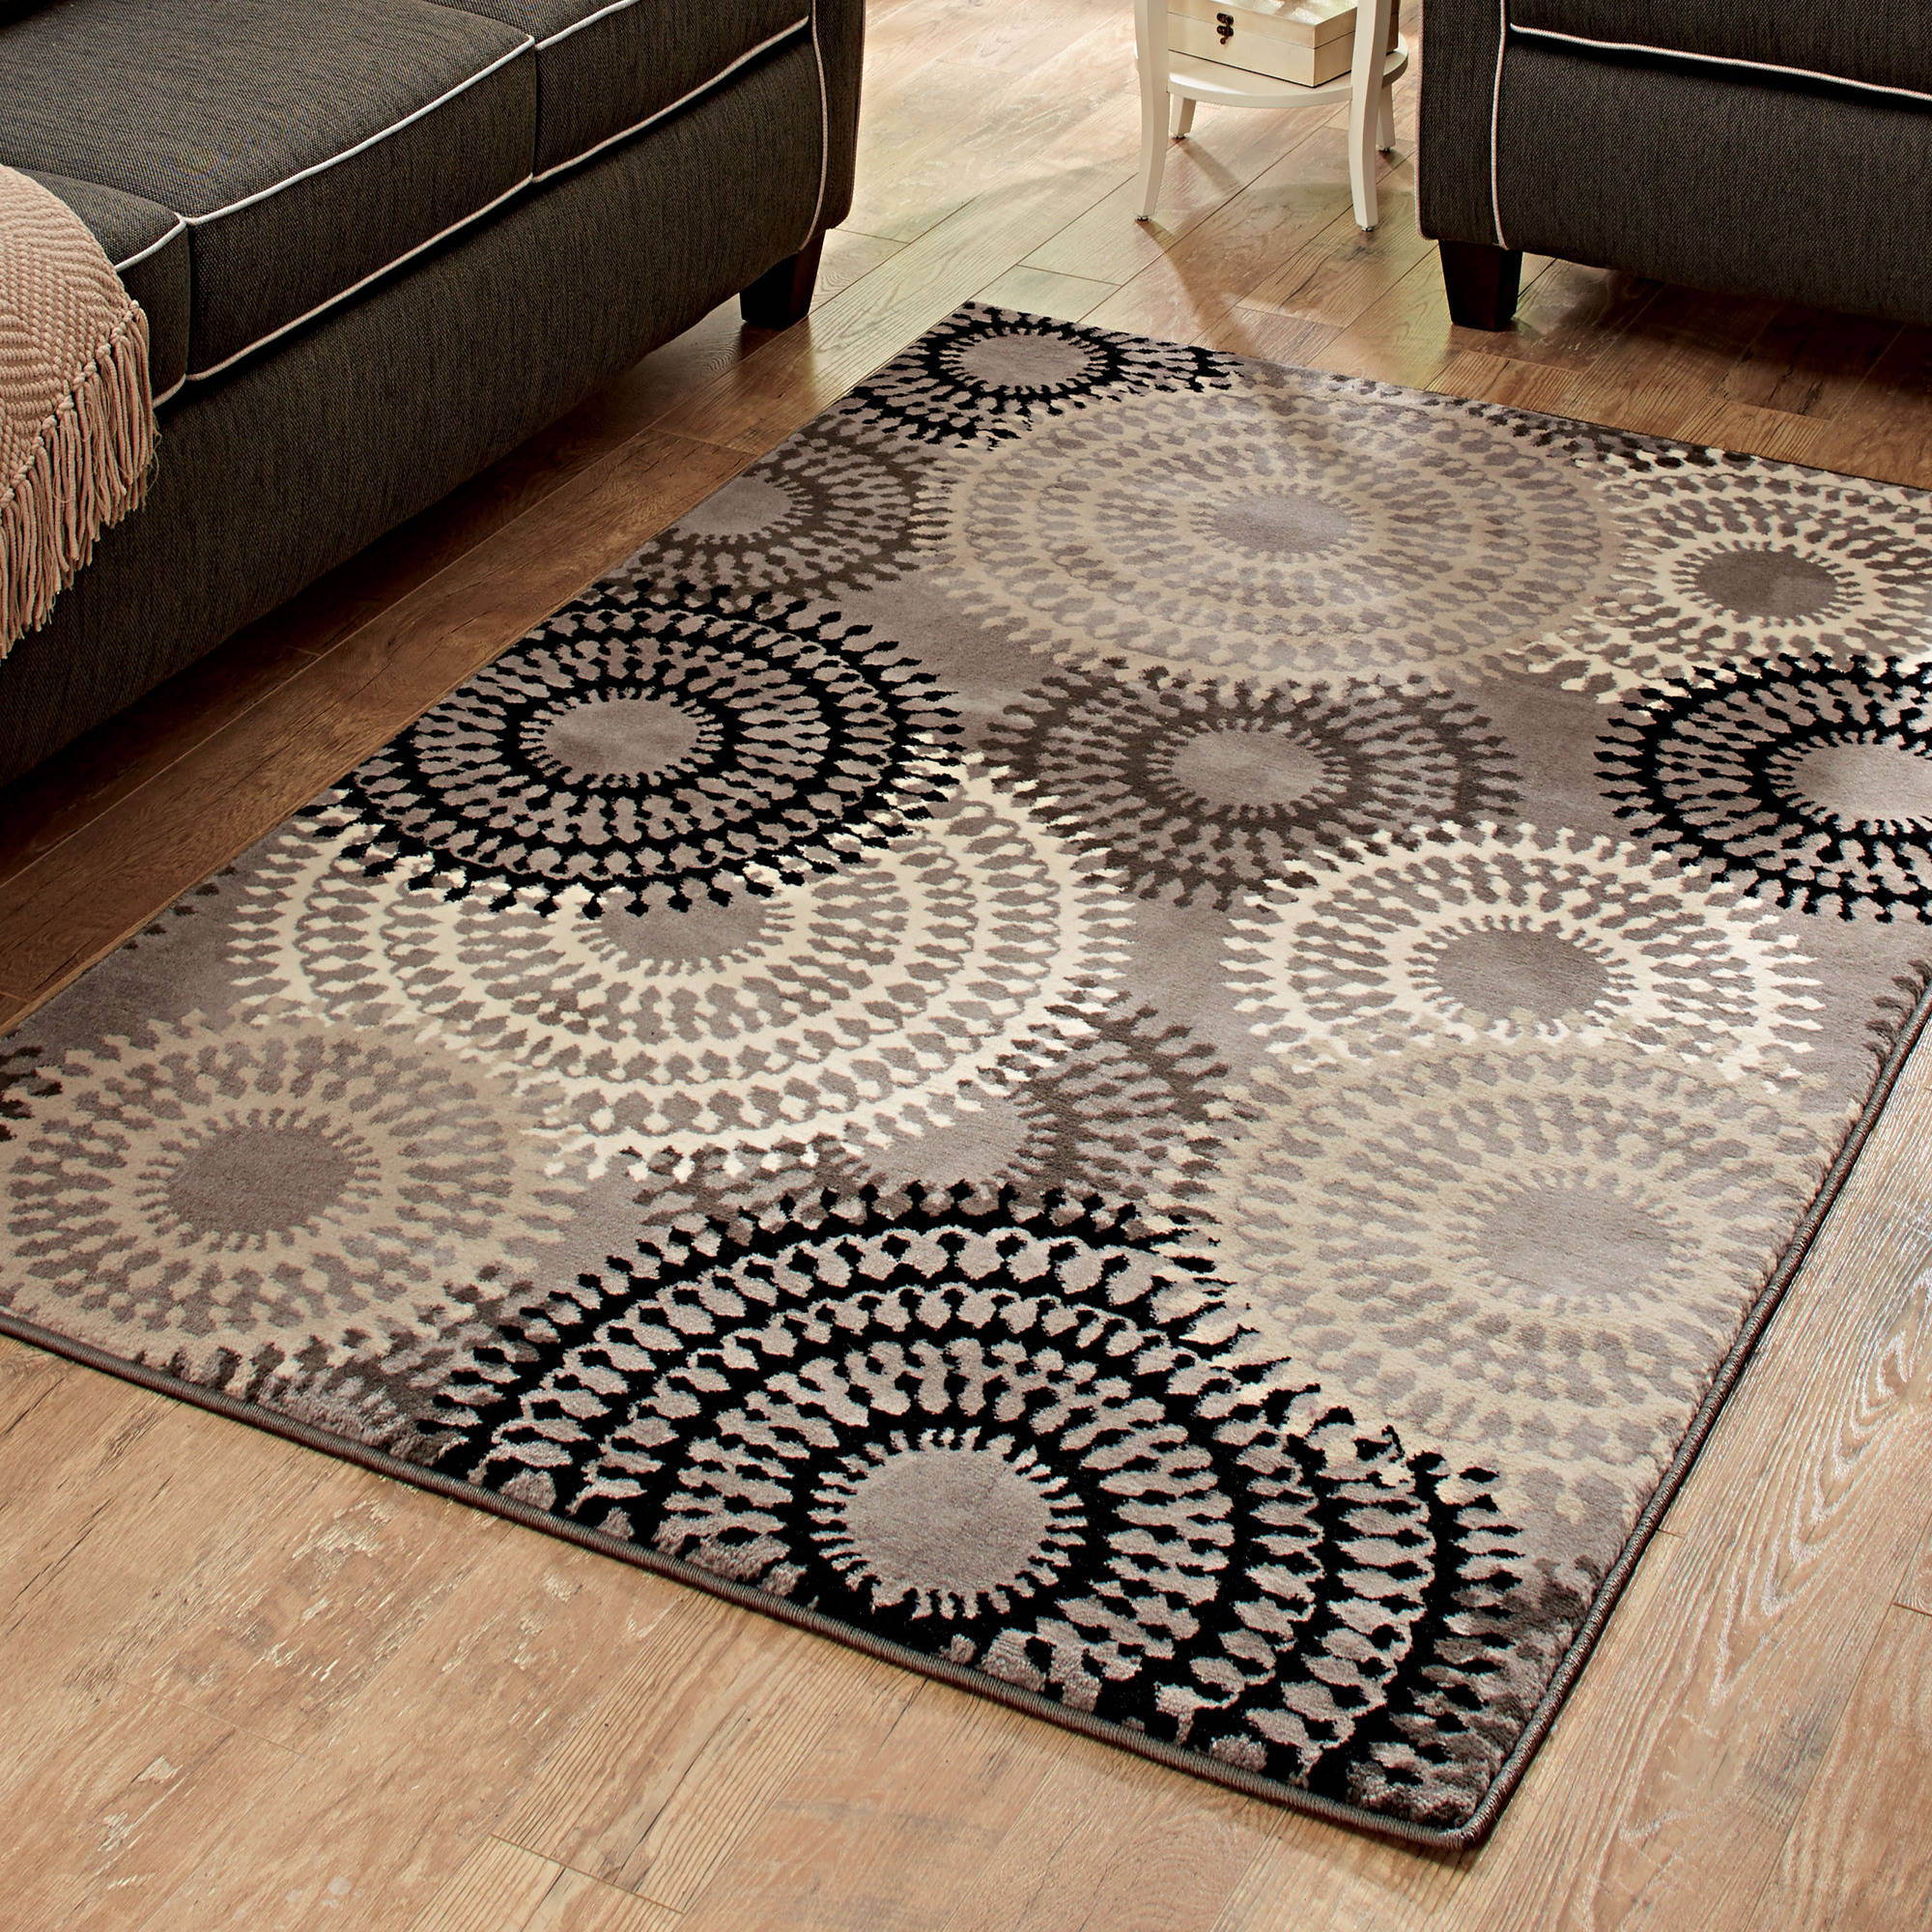 Better Homes Or Gardens Taupe Ornate Circles Area Rug Or